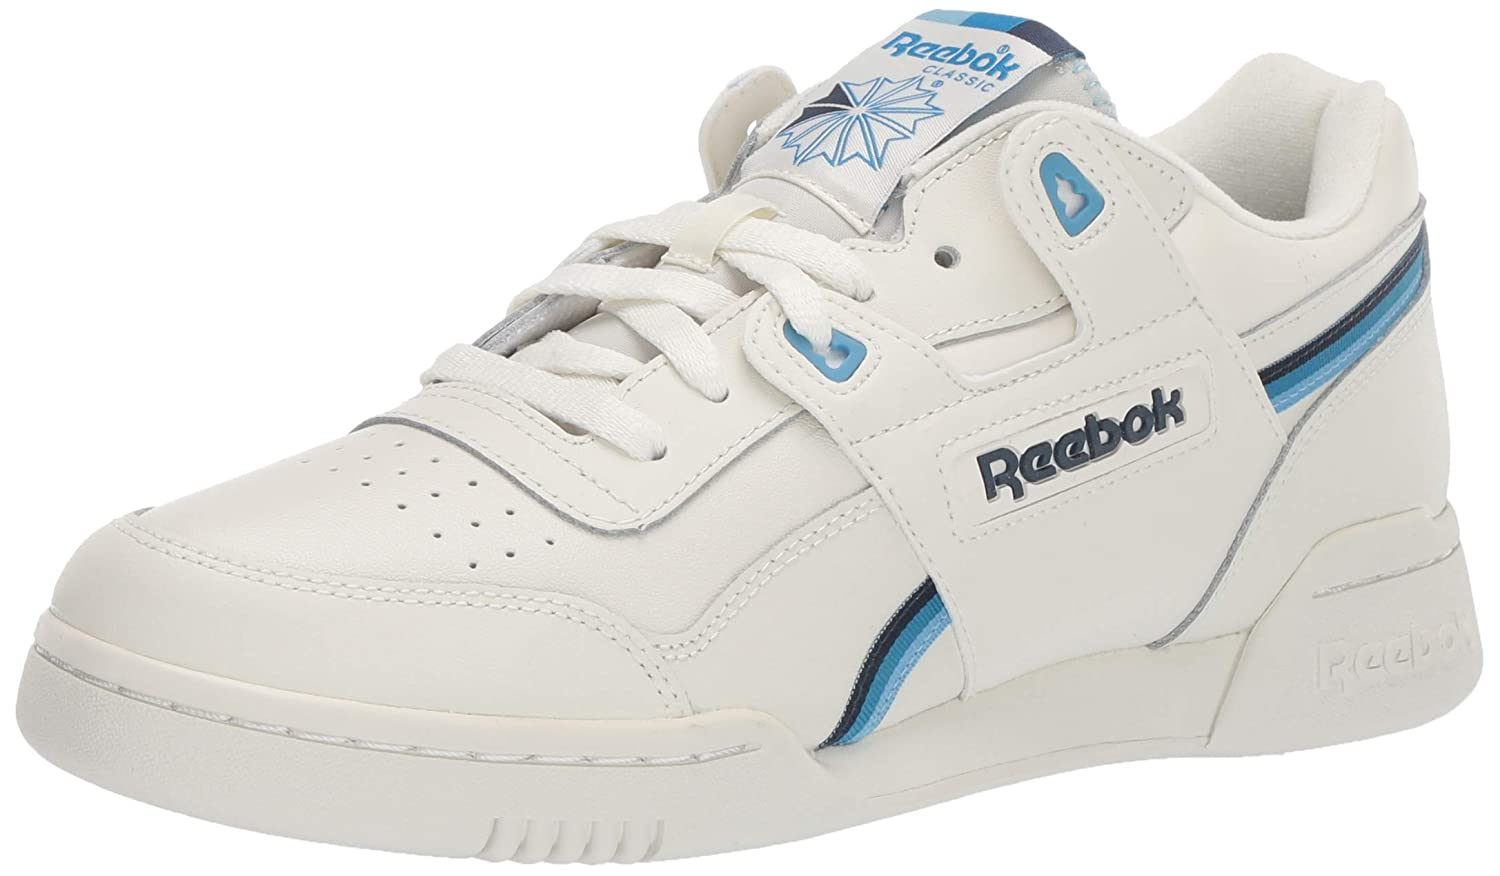 Chalk Collegiate Navy Cyan 41.5 EU Reebok - Workout Plus Homme